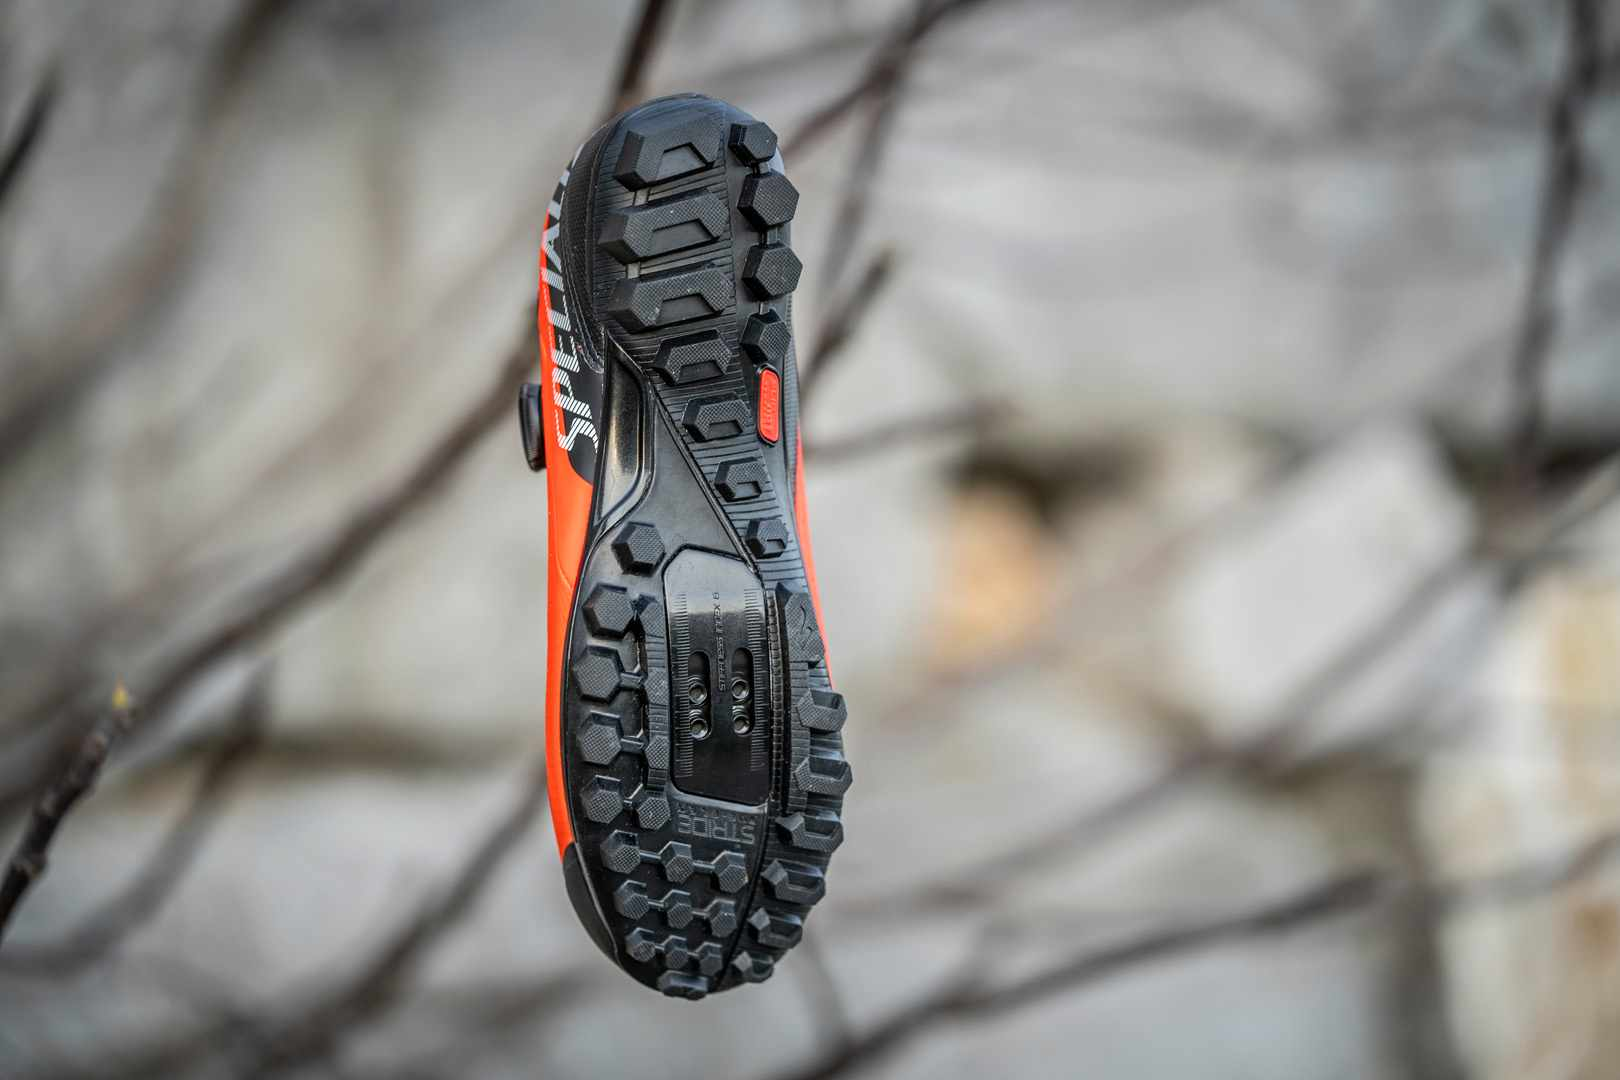 2020 specialized recon shoe